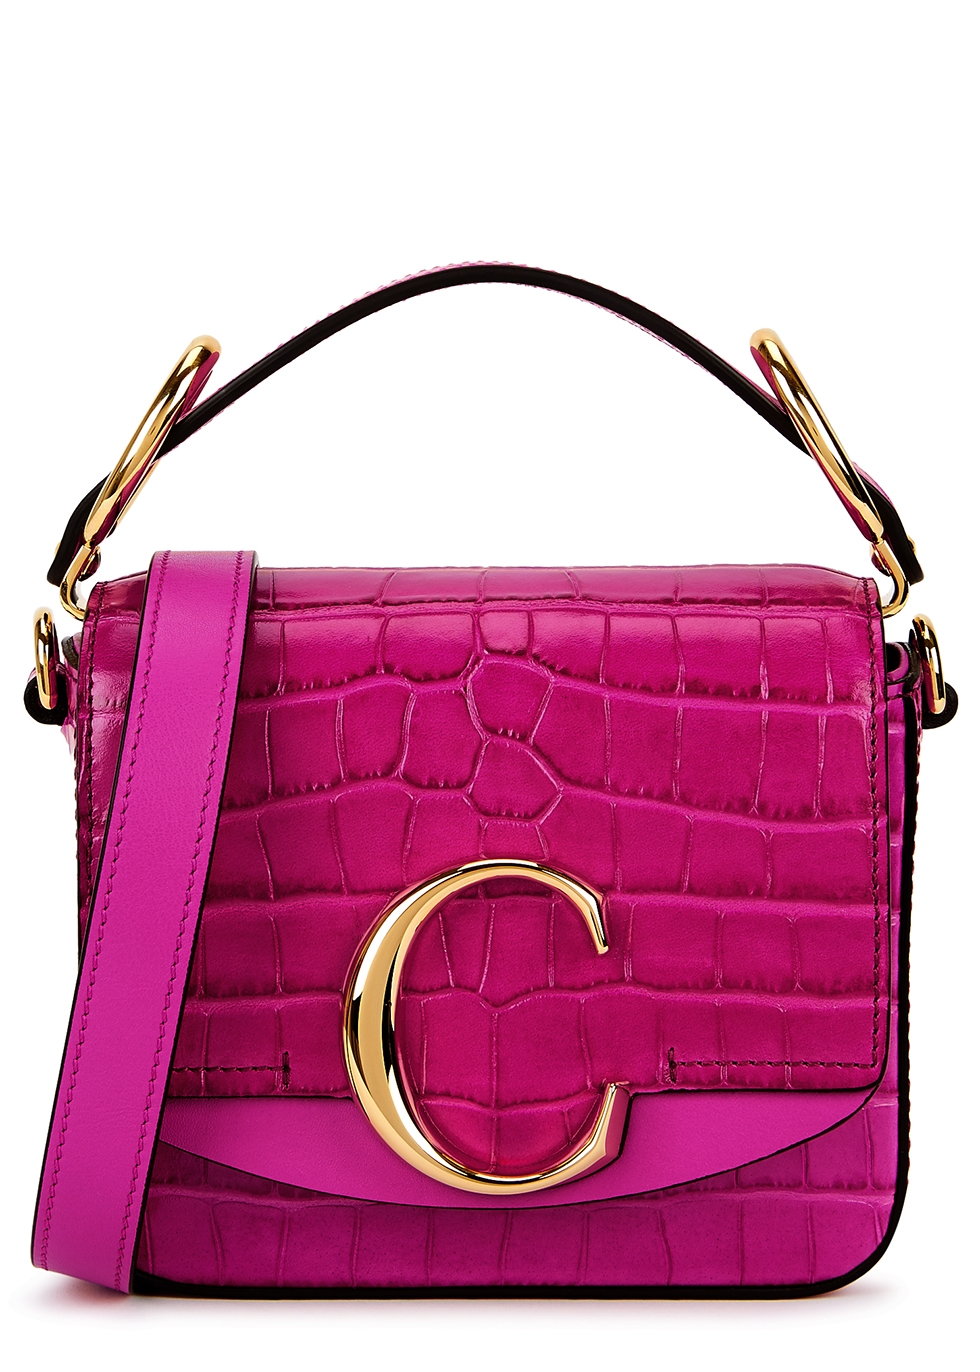 CHLOÉ | Chloé Chloé C Mini Fuchsia Leather Cross-Body Bag | Goxip